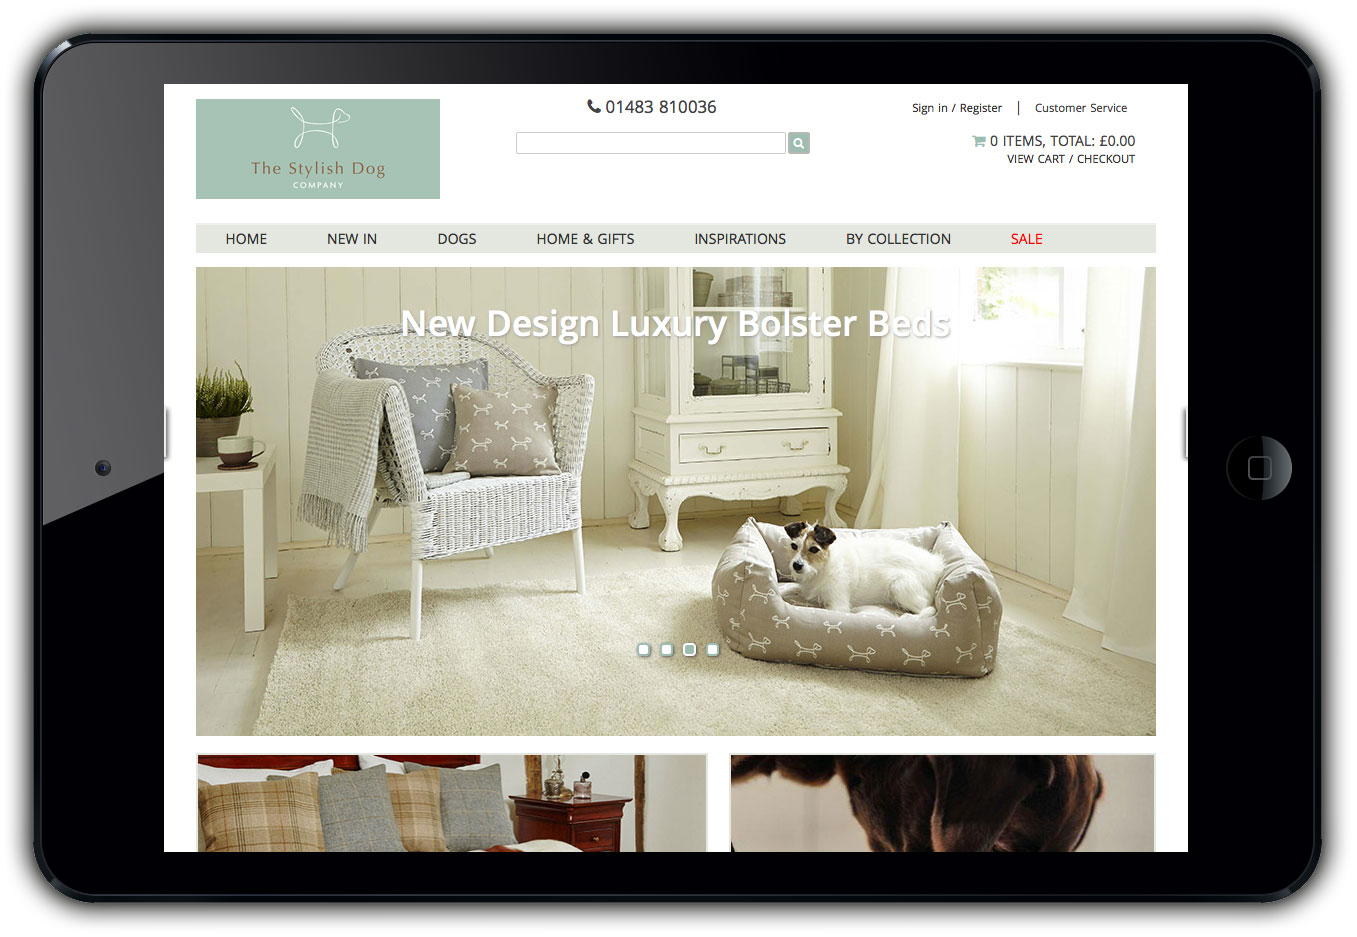 The Stylish Dog Company Web Site Design Ipad